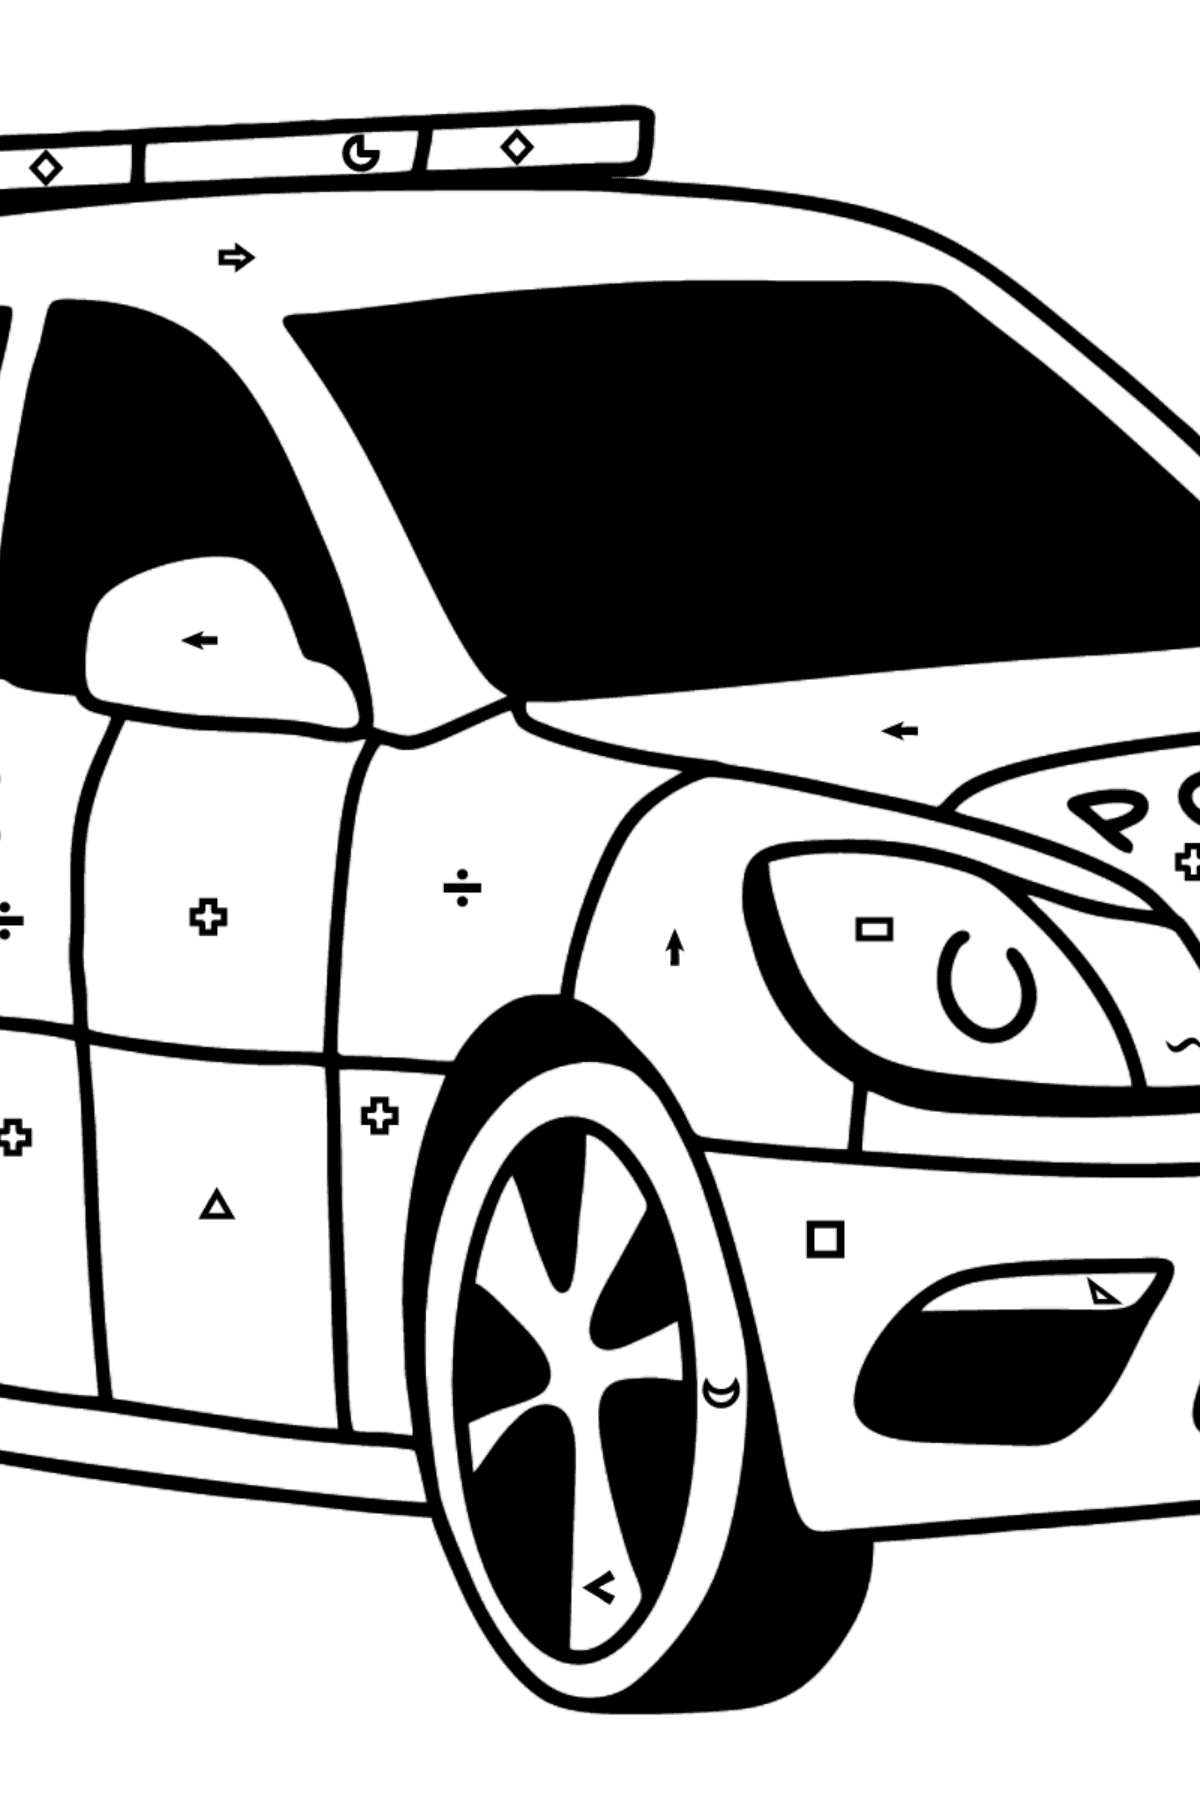 UK Police Car coloring page - Coloring by Symbols and Geometric Shapes for Kids